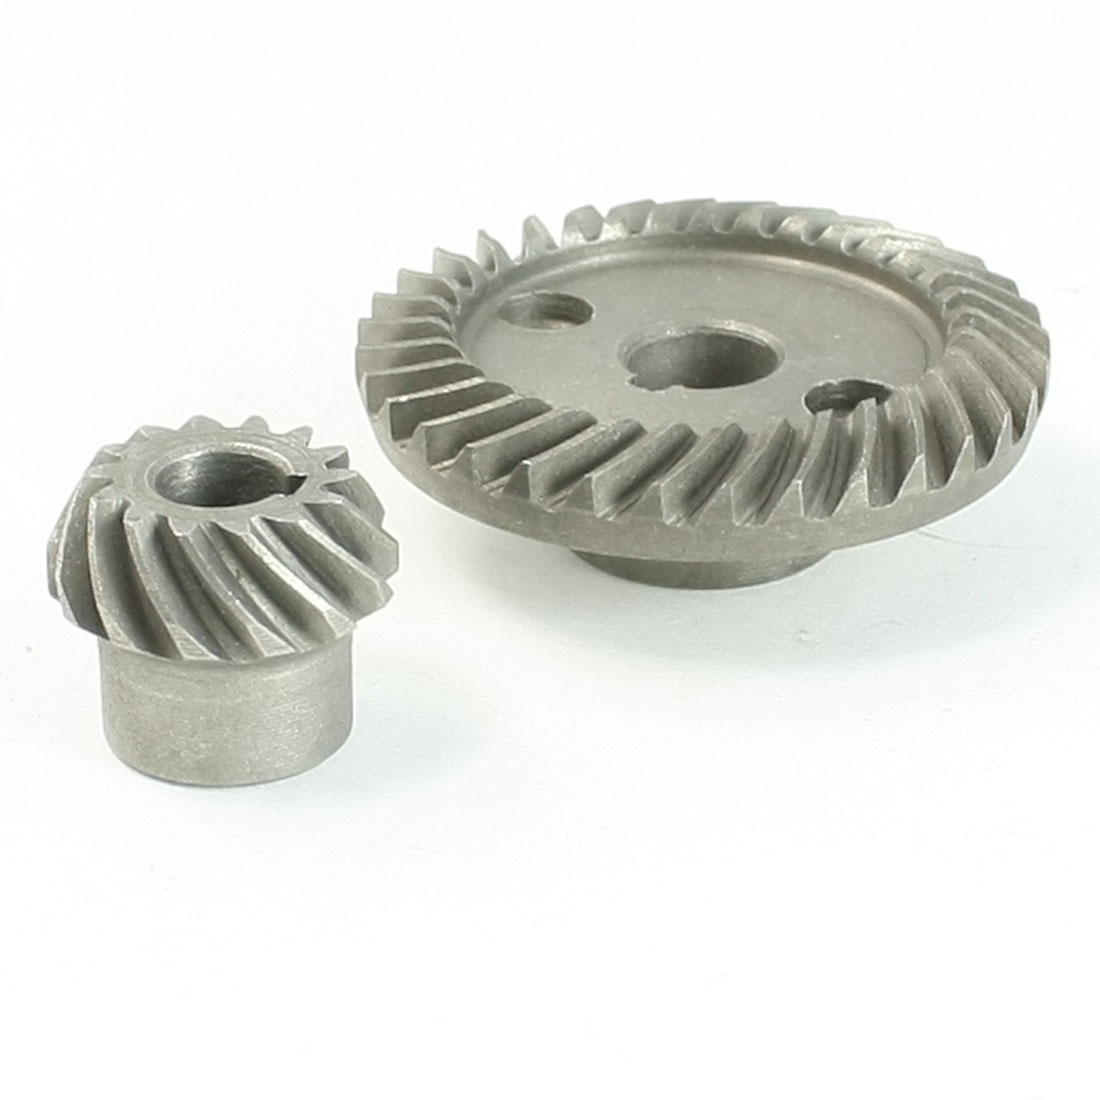 Electric Power Tool Part Spiral Bevel Gear Pinion Set